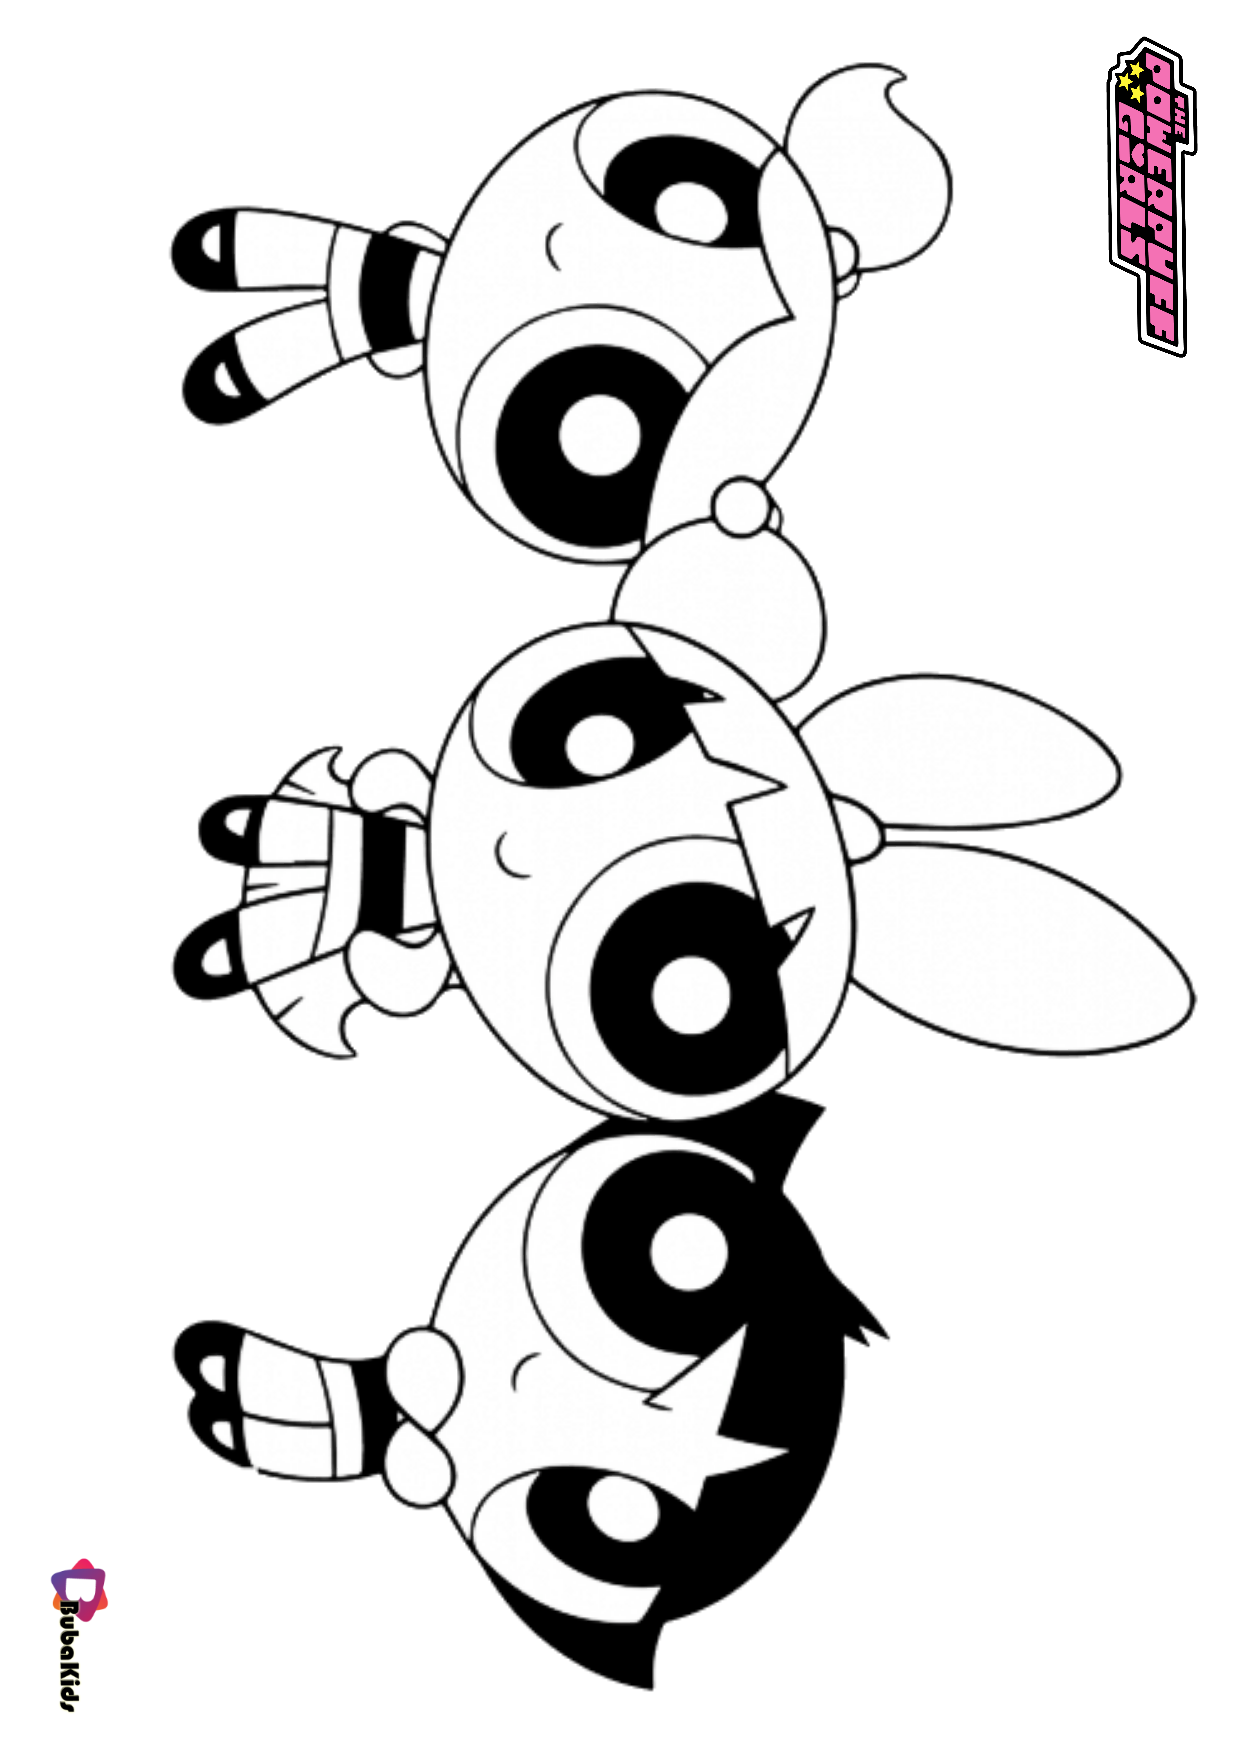 powerpuff girls coloring pages bubbles power puff girls z coloring pages coloring home bubbles pages girls coloring powerpuff